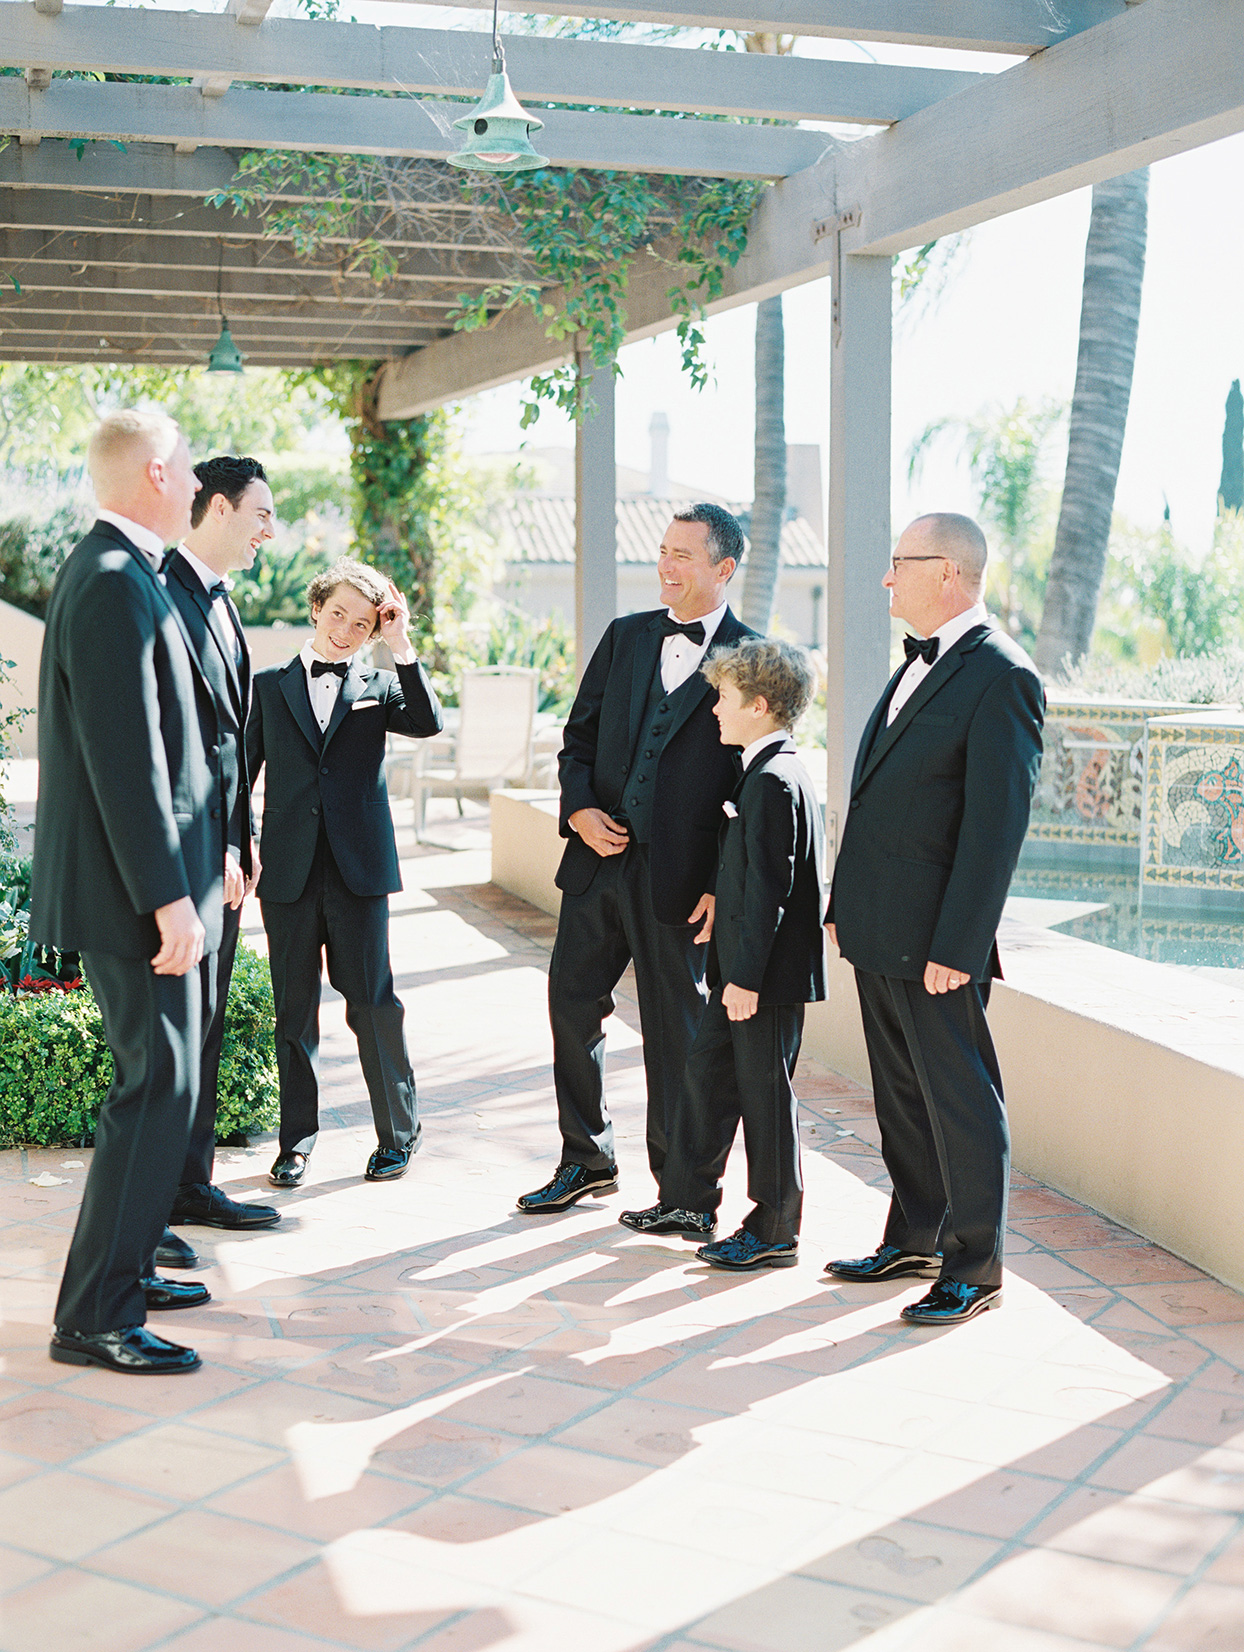 wedding men in black suits standing on patio